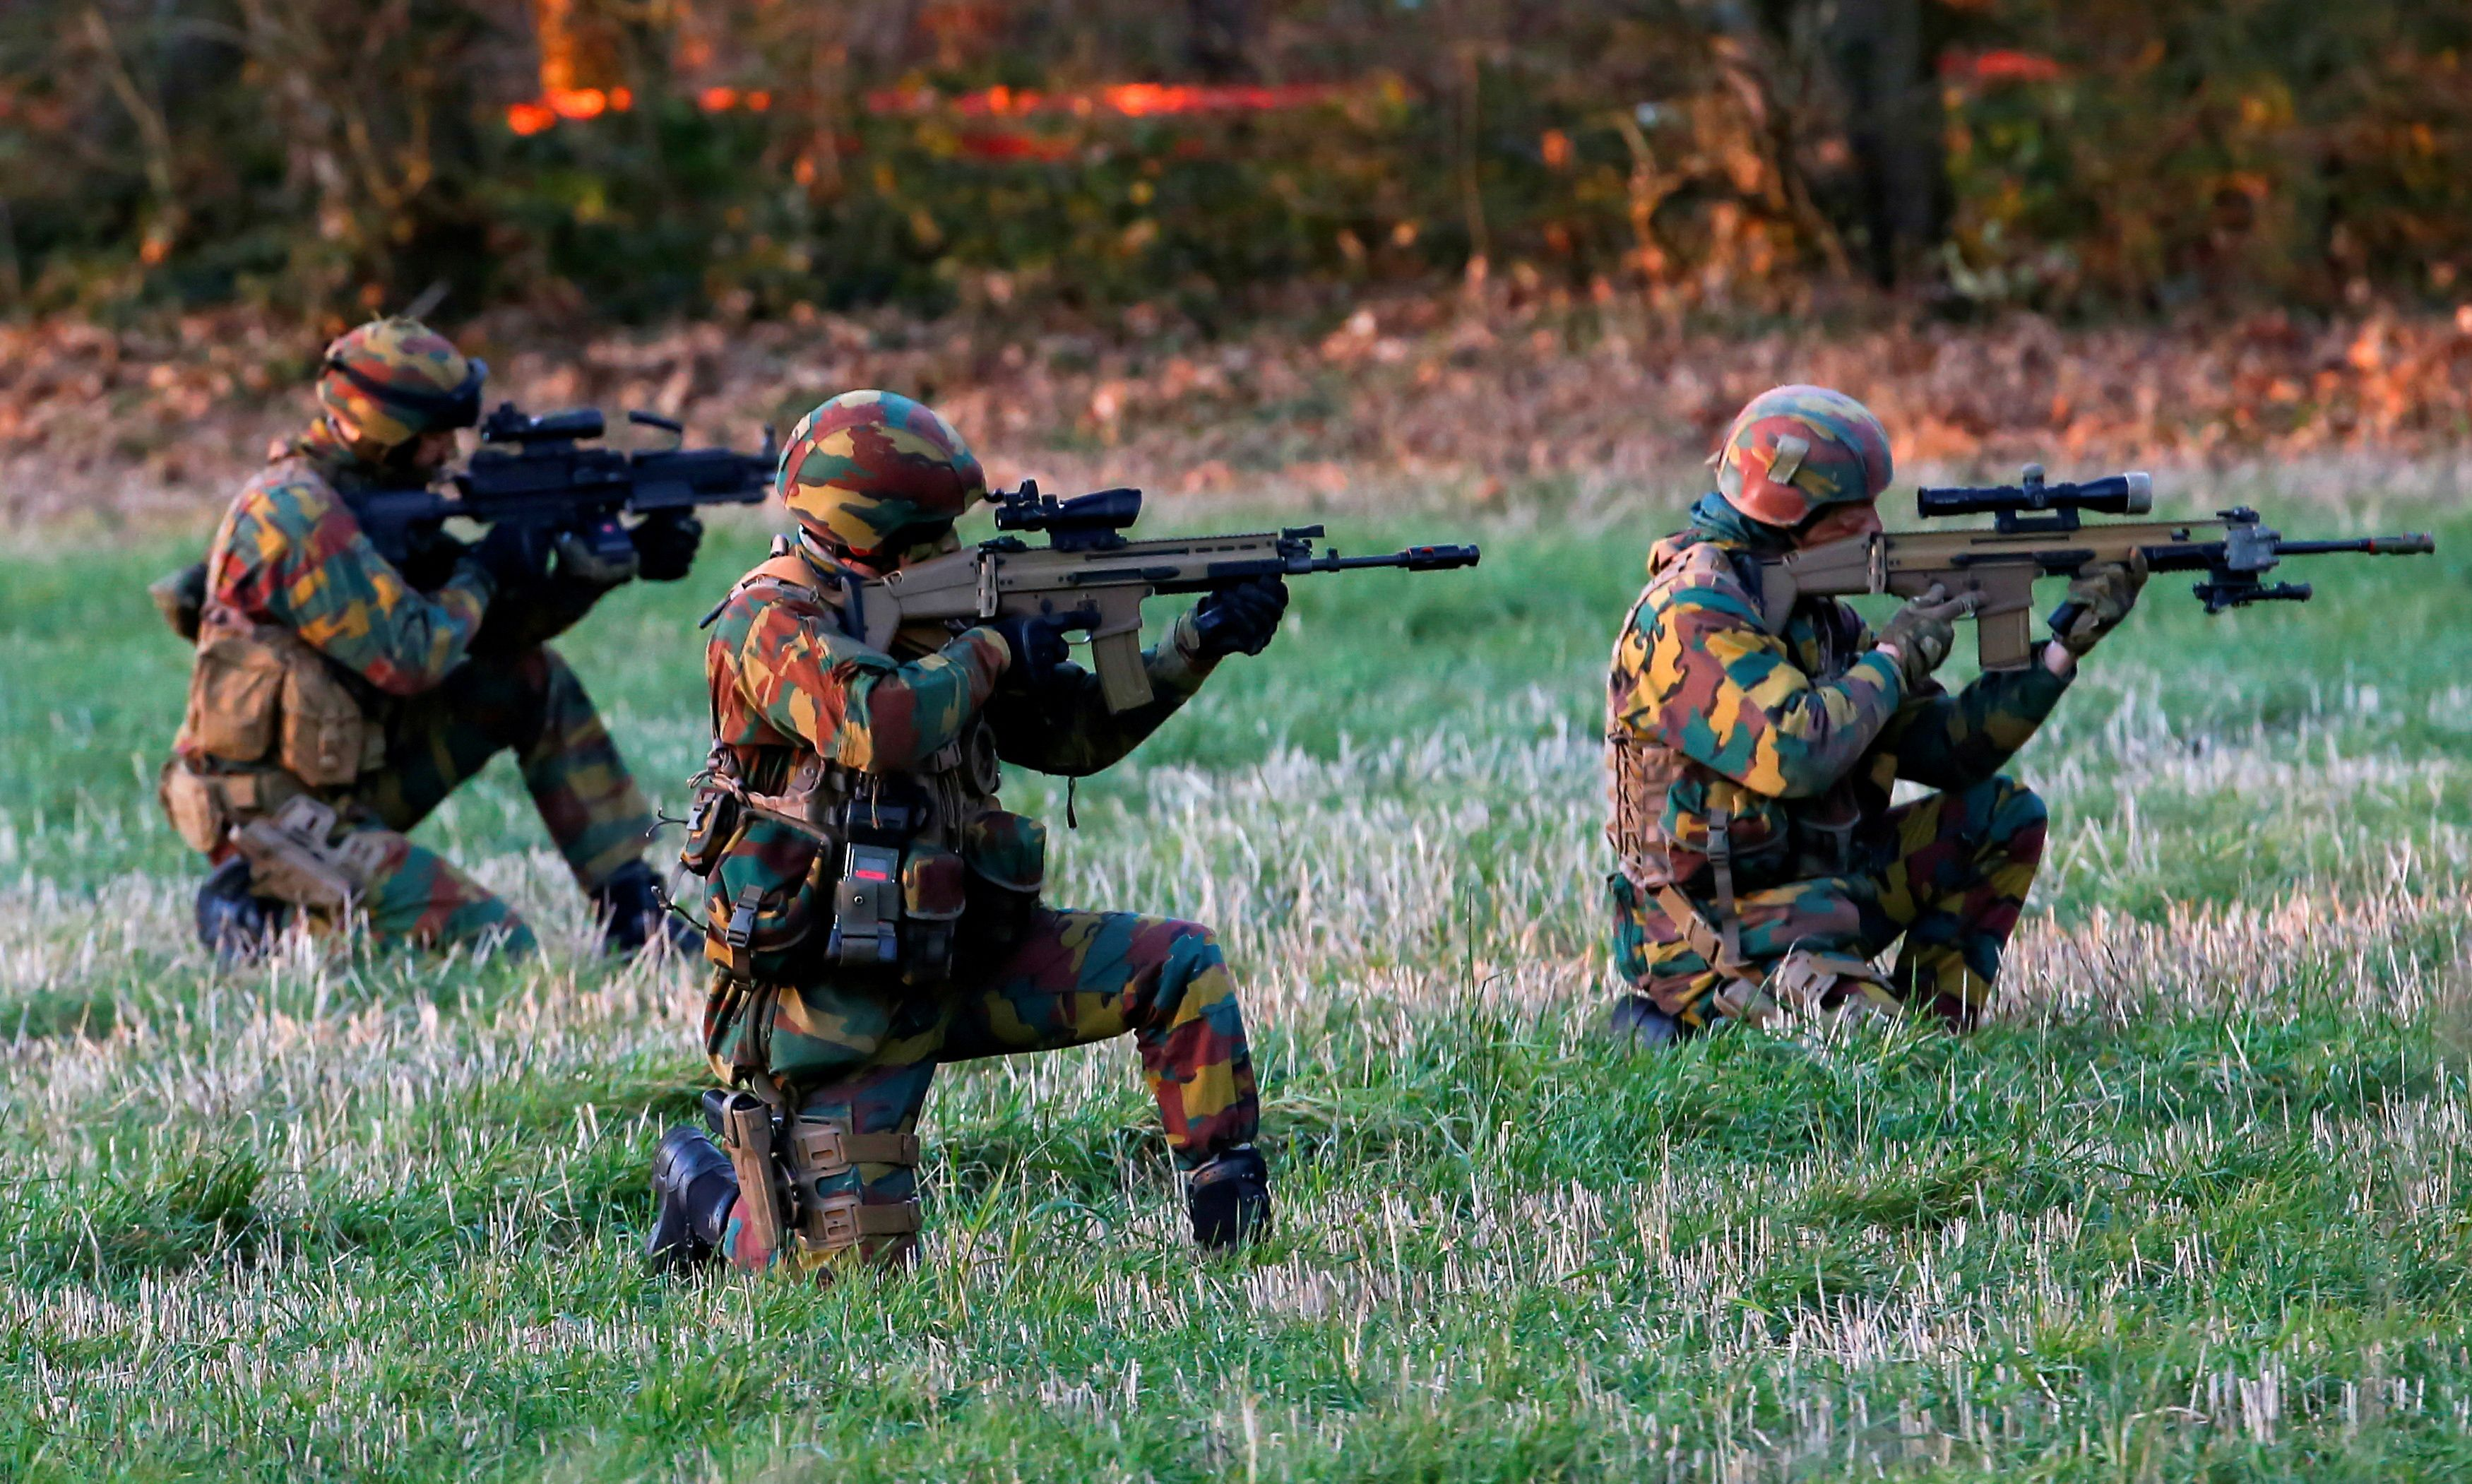 Belgian army Special Forces are seen during the Black Blade military exercise involving several European Union countries and organised by the European Defence Agency at Florennes airbase, Belgium November 30, 2016.  REUTERS/Yves Herman/File Photo